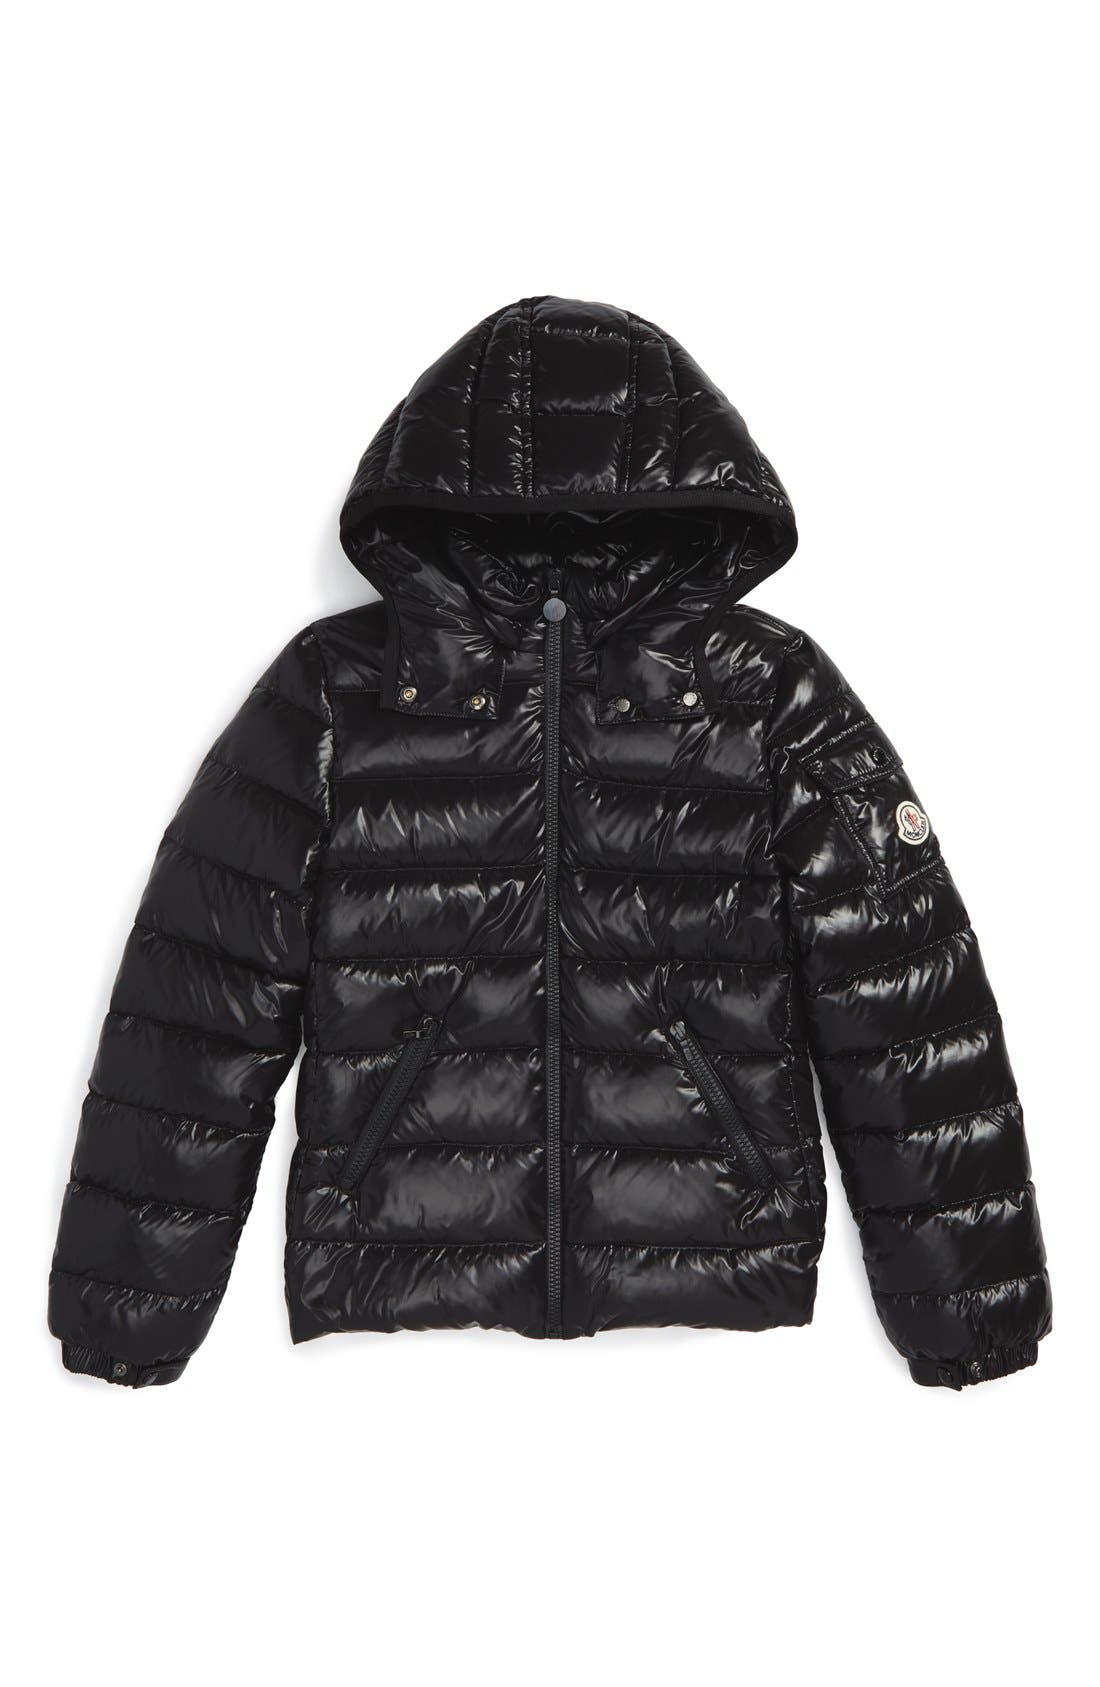 'Bady' Hooded Down Jacket,                         Main,                         color, Black